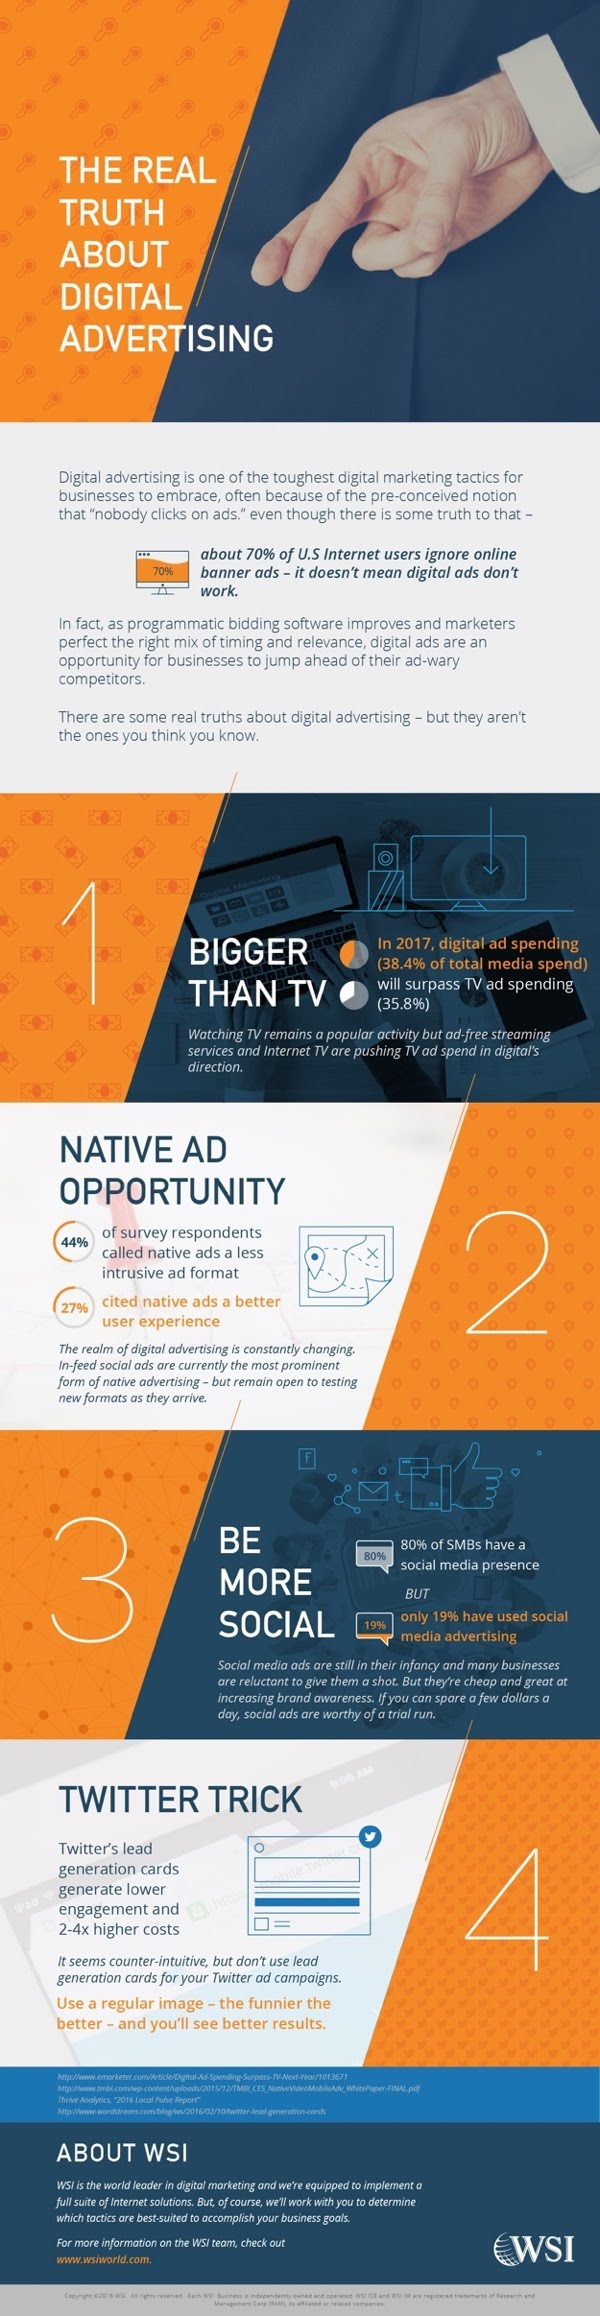 The Real Truth About Digital Advertising - #infographic